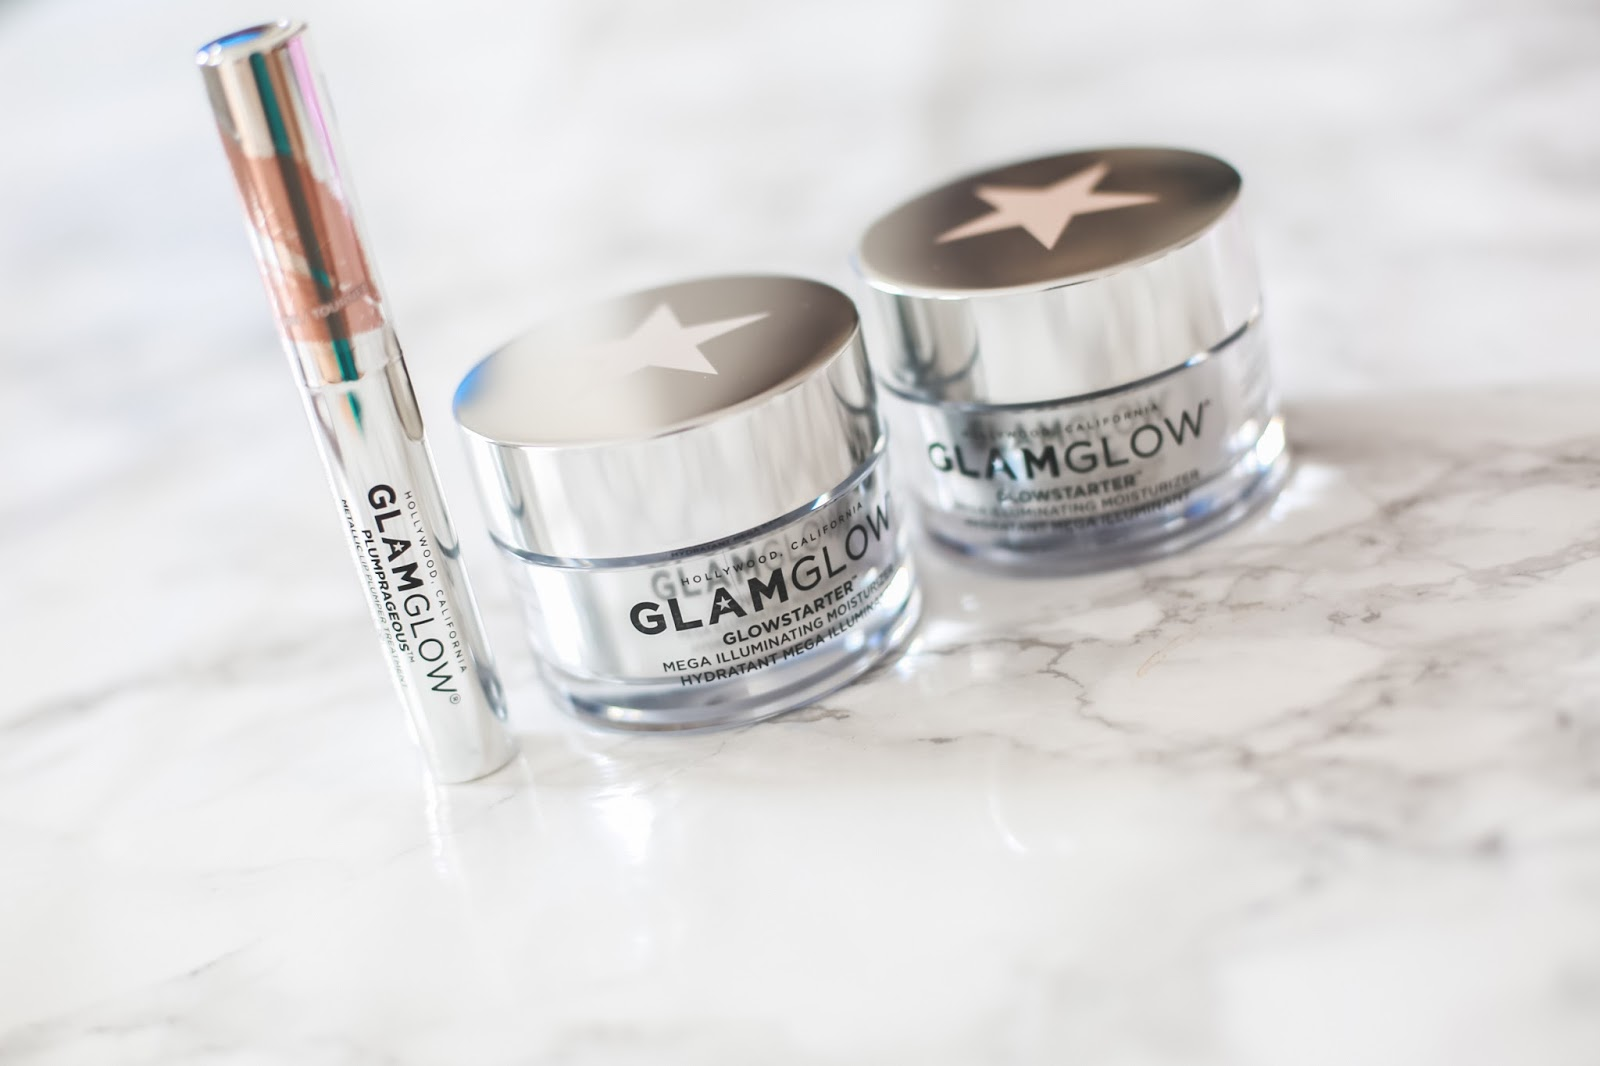 Glowstarter Glamglow venus is naive blog beauté